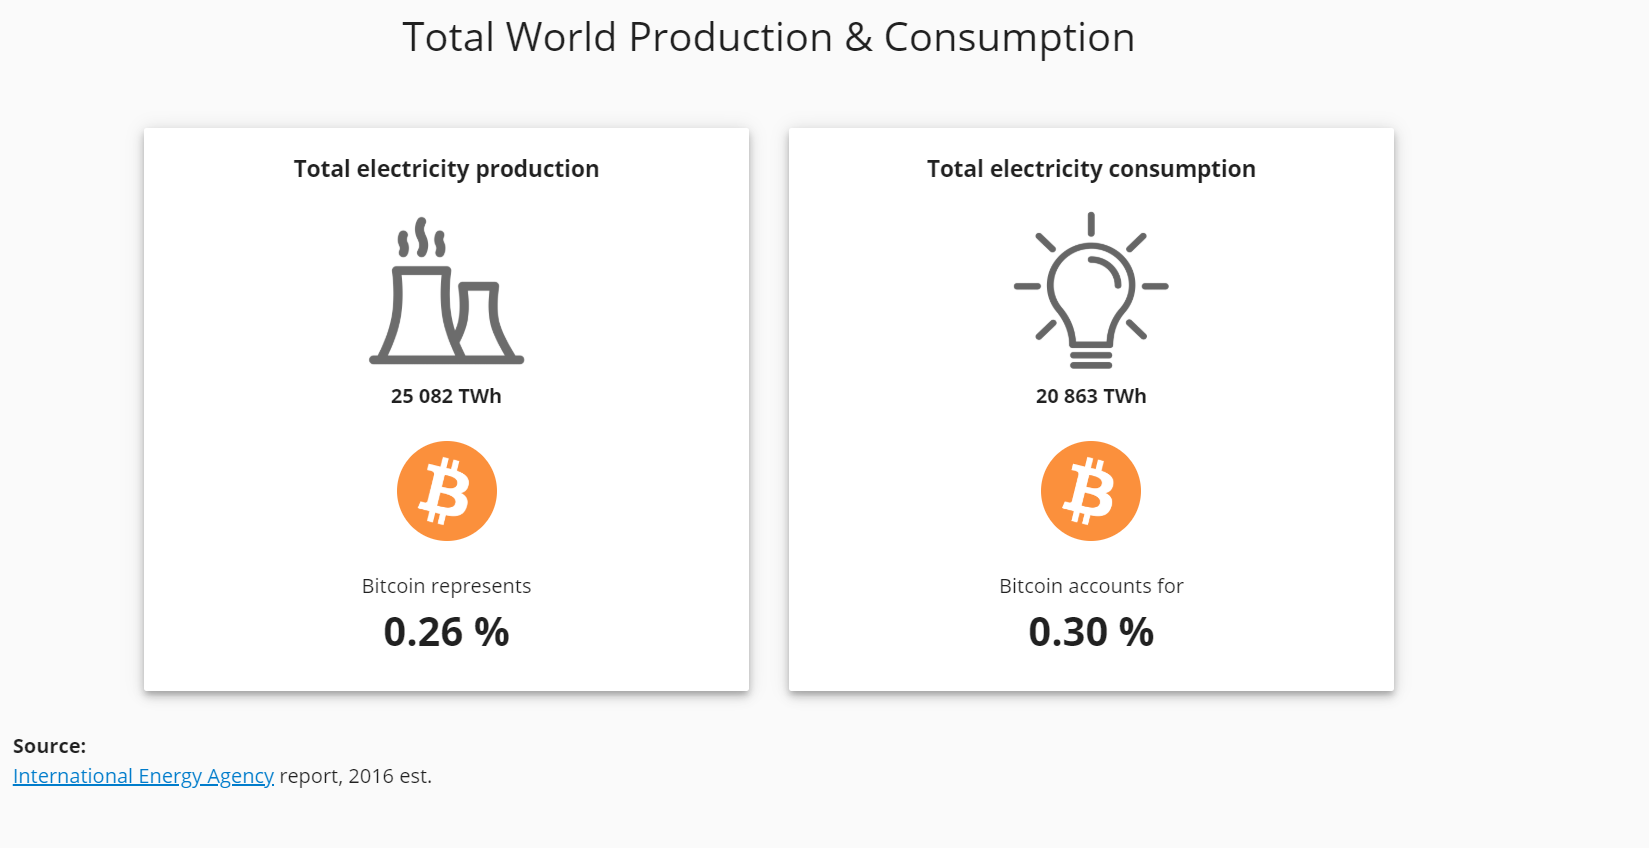 As of July 2019, Bitcoin consumes 0.30% of Earth's electricity. Wait until we get Dyson spheres.